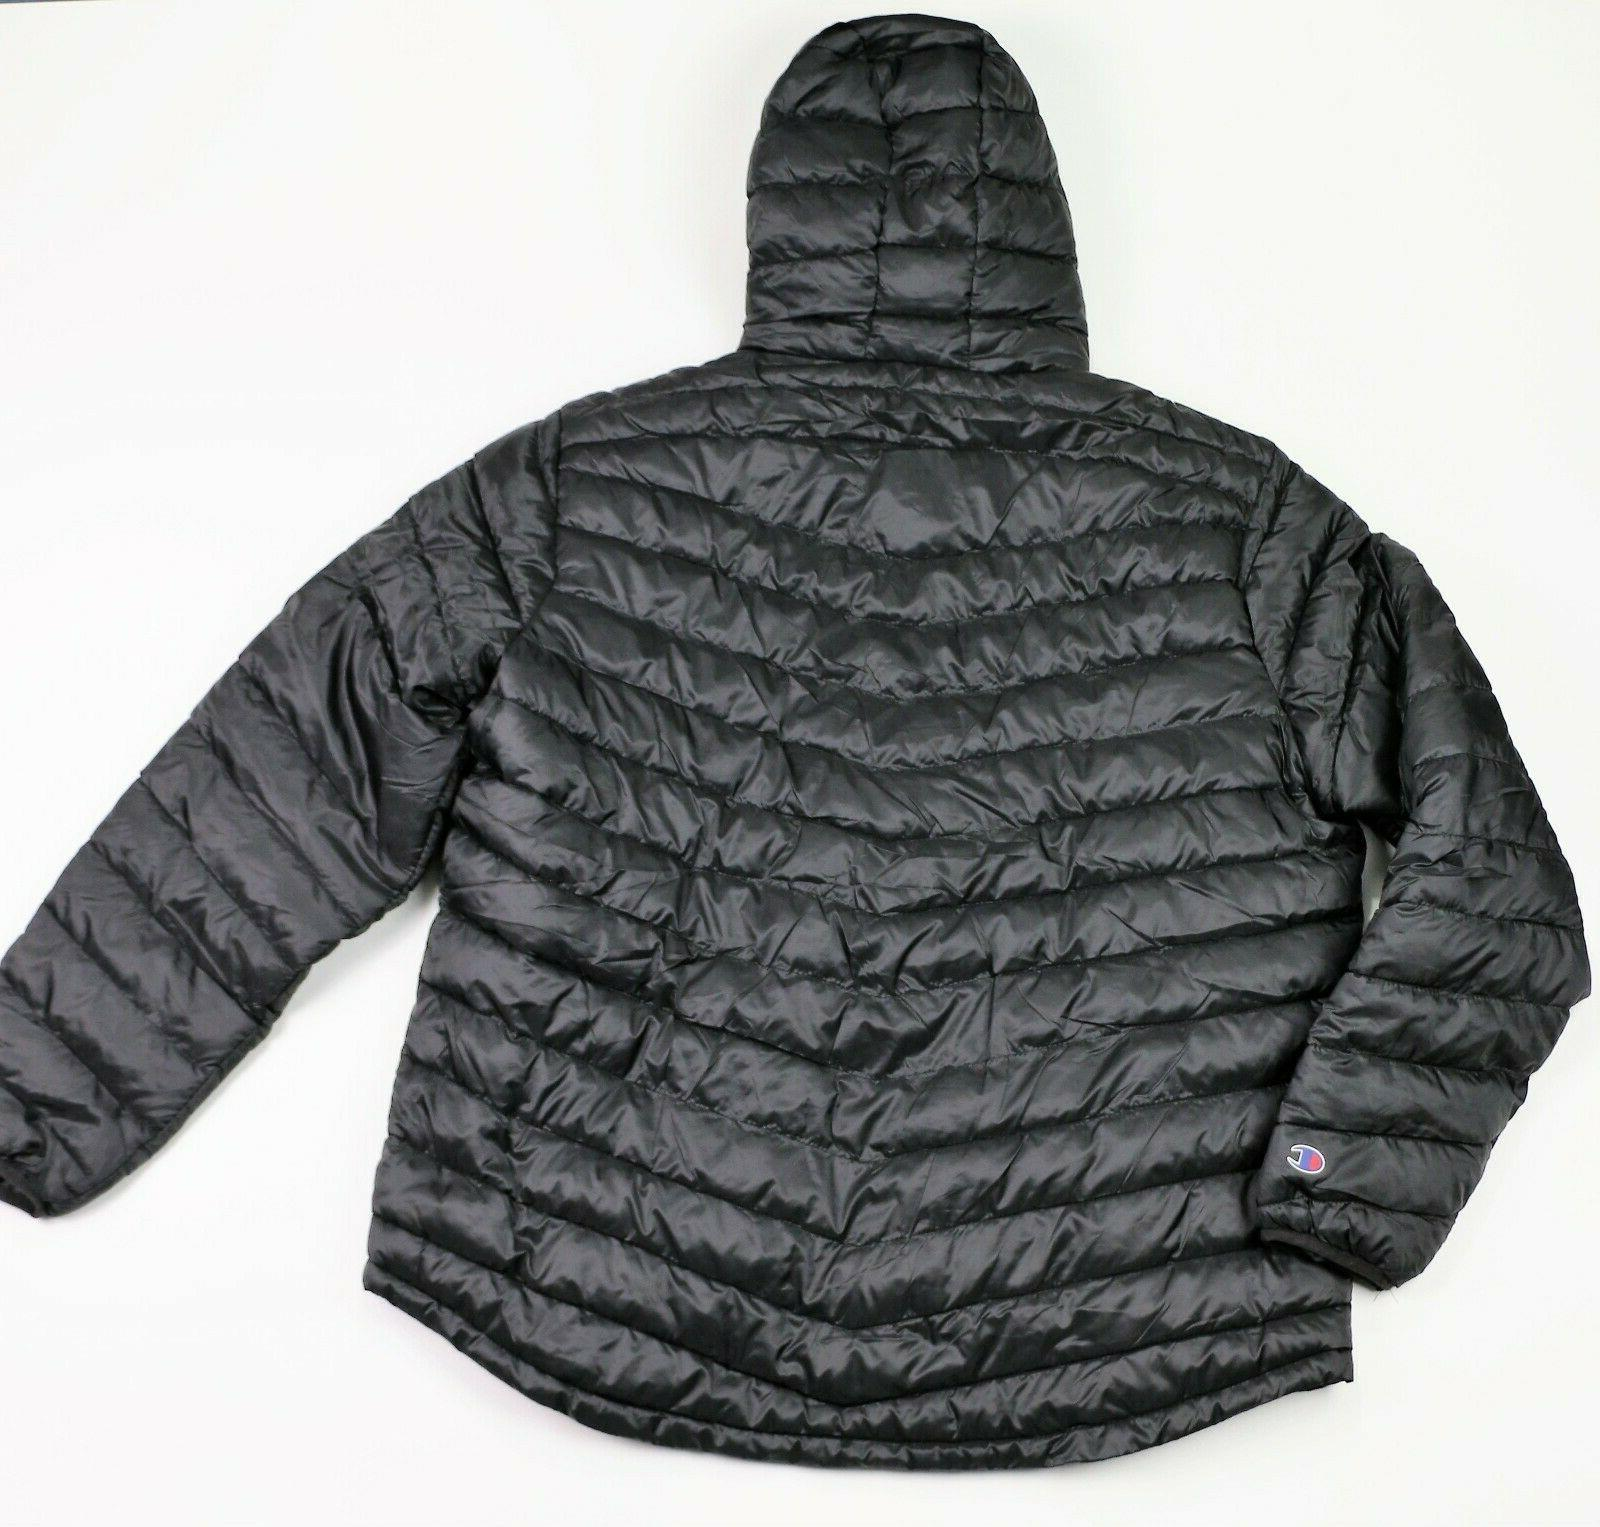 New Men's Champion Insulated Puffer Jacket Sizes L,